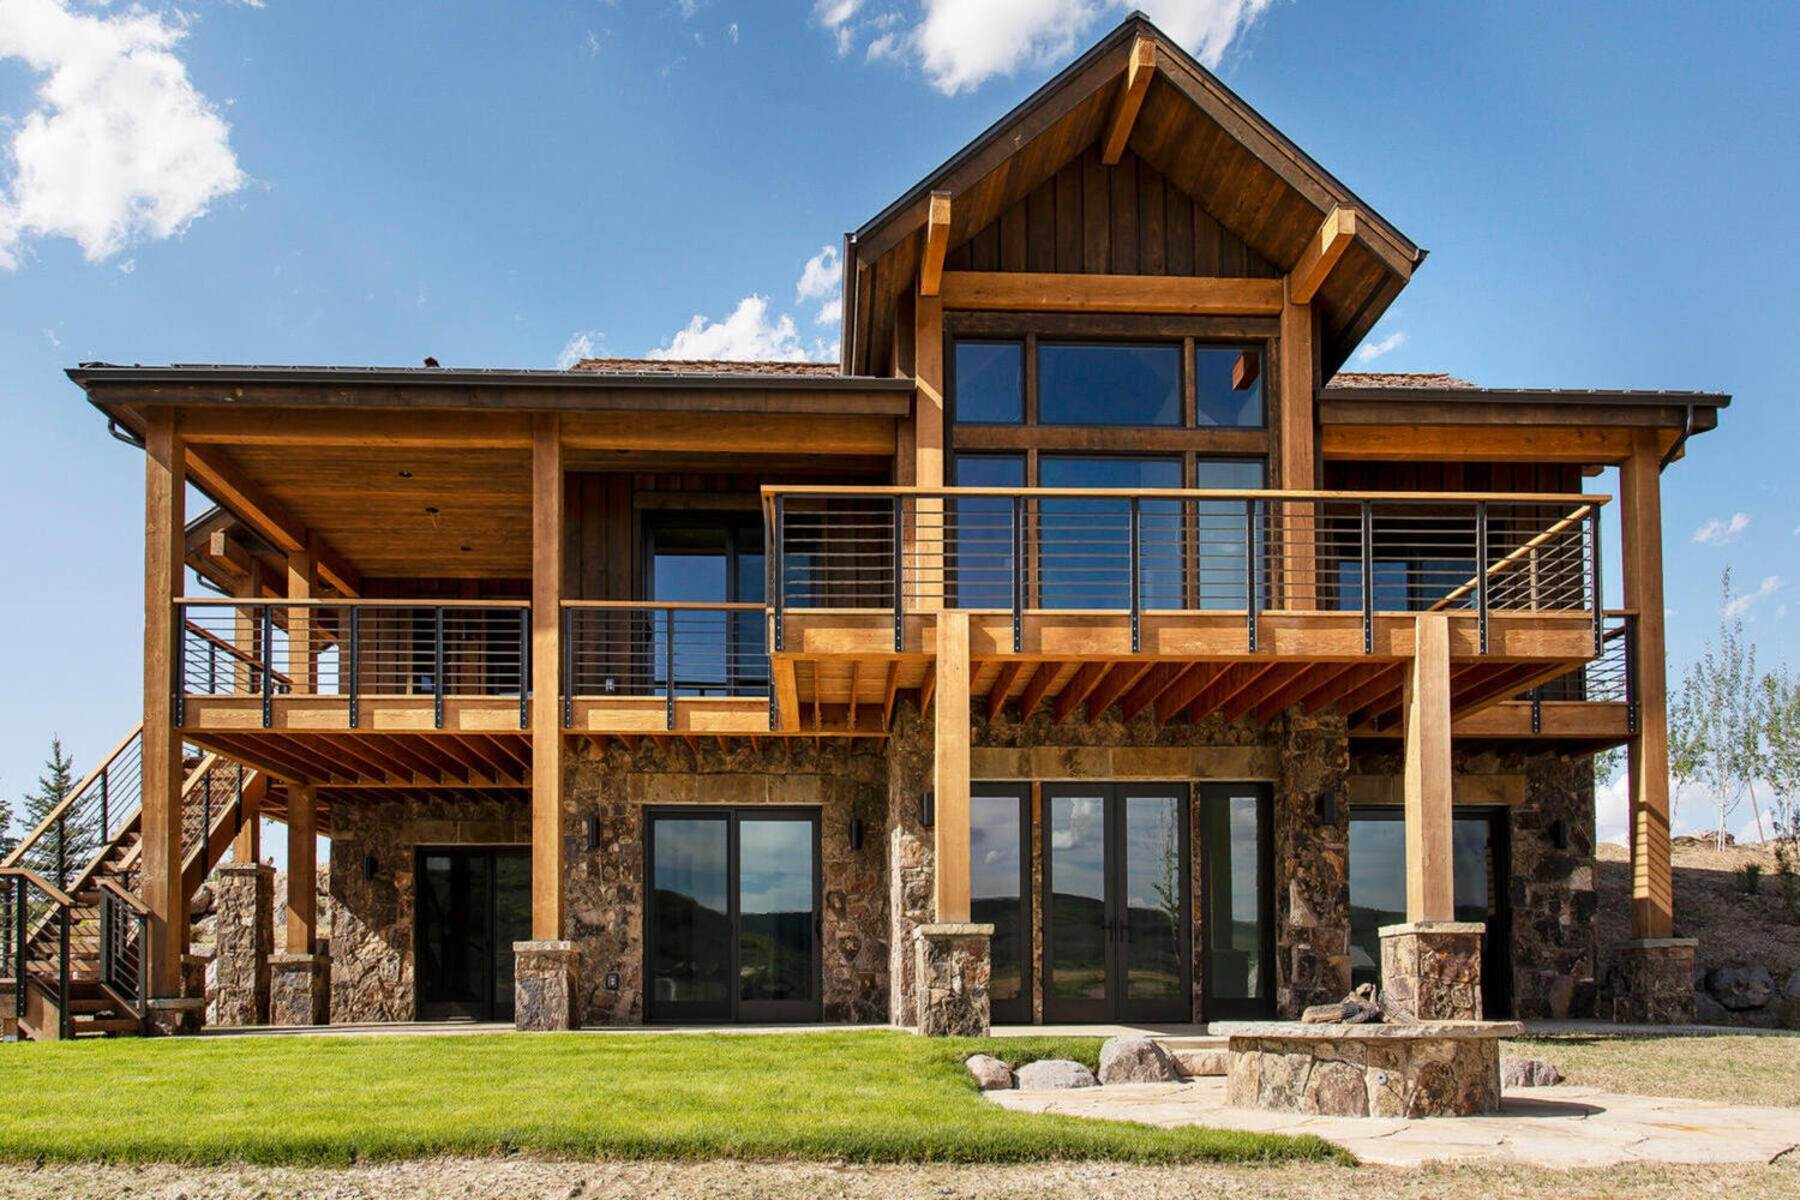 Single Family Homes for Sale at Expanded Juniper Cabin on 1.2 Acres at Victory Ranch! 6136 N High Plains Court #372A Heber City, Utah 84032 United States